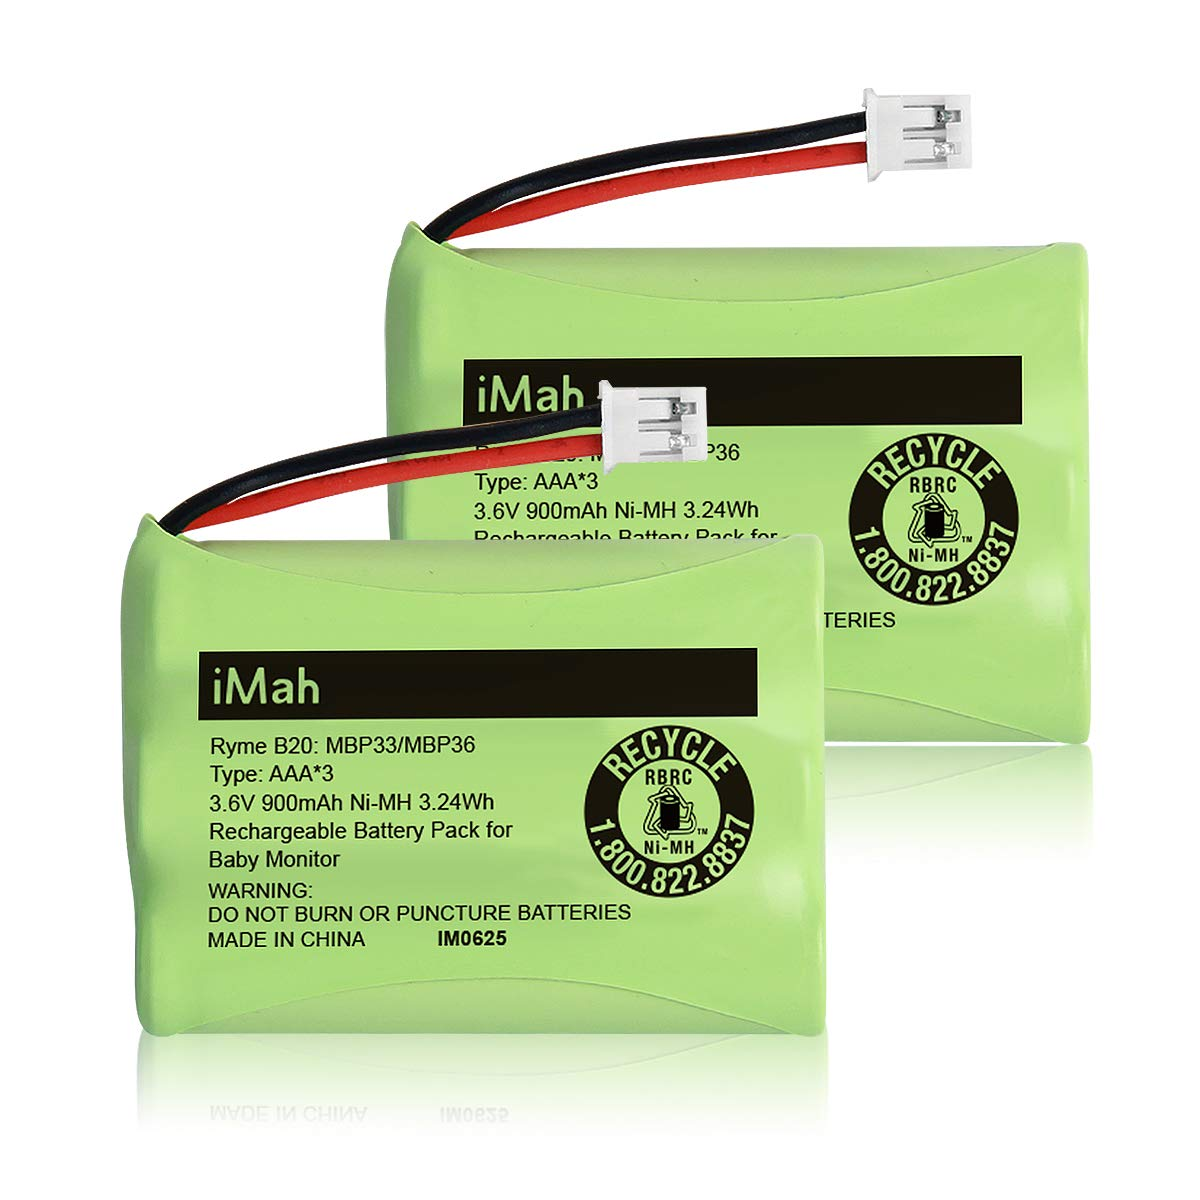 iMah Ryme B20 Battery Pack (Connector only fits Motorola MBP33/MBP36 Old Version, Don't fit MBP33/MBP36 New Version   Plug Different) Fits Summer Infant 29030-10 29600-10, Pack of 2